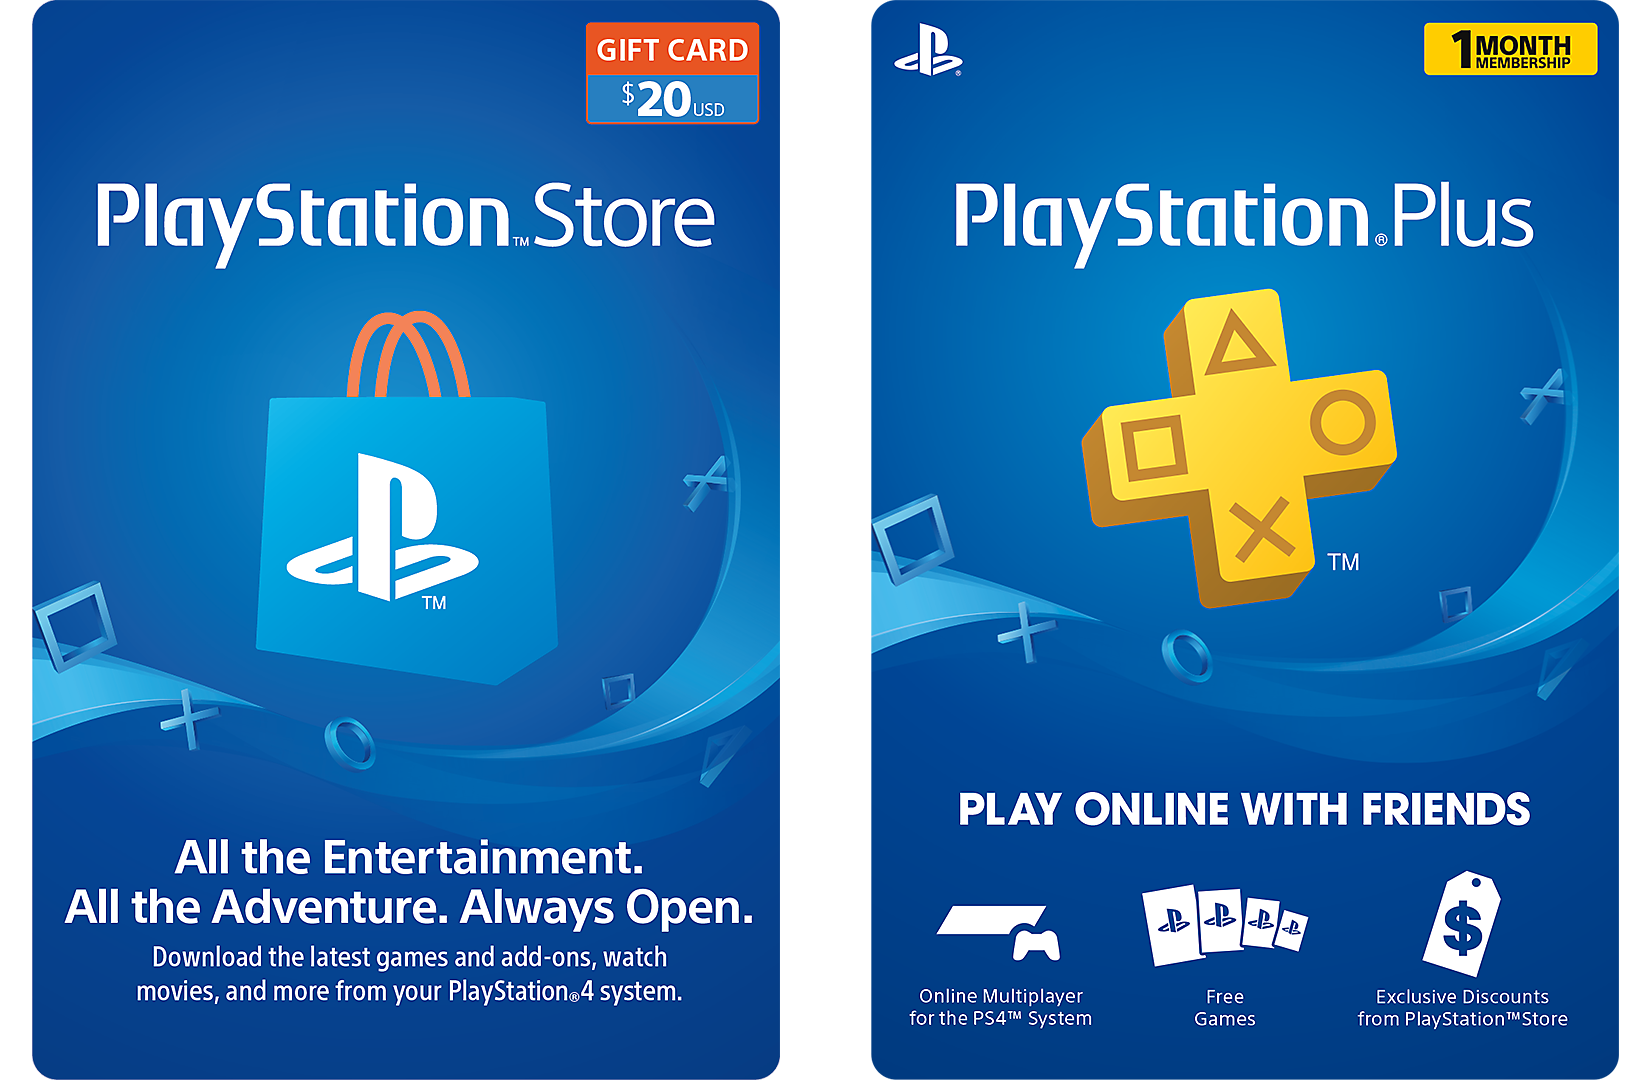 Psn Cards Playstation Gift Card Ps Plus Playstation